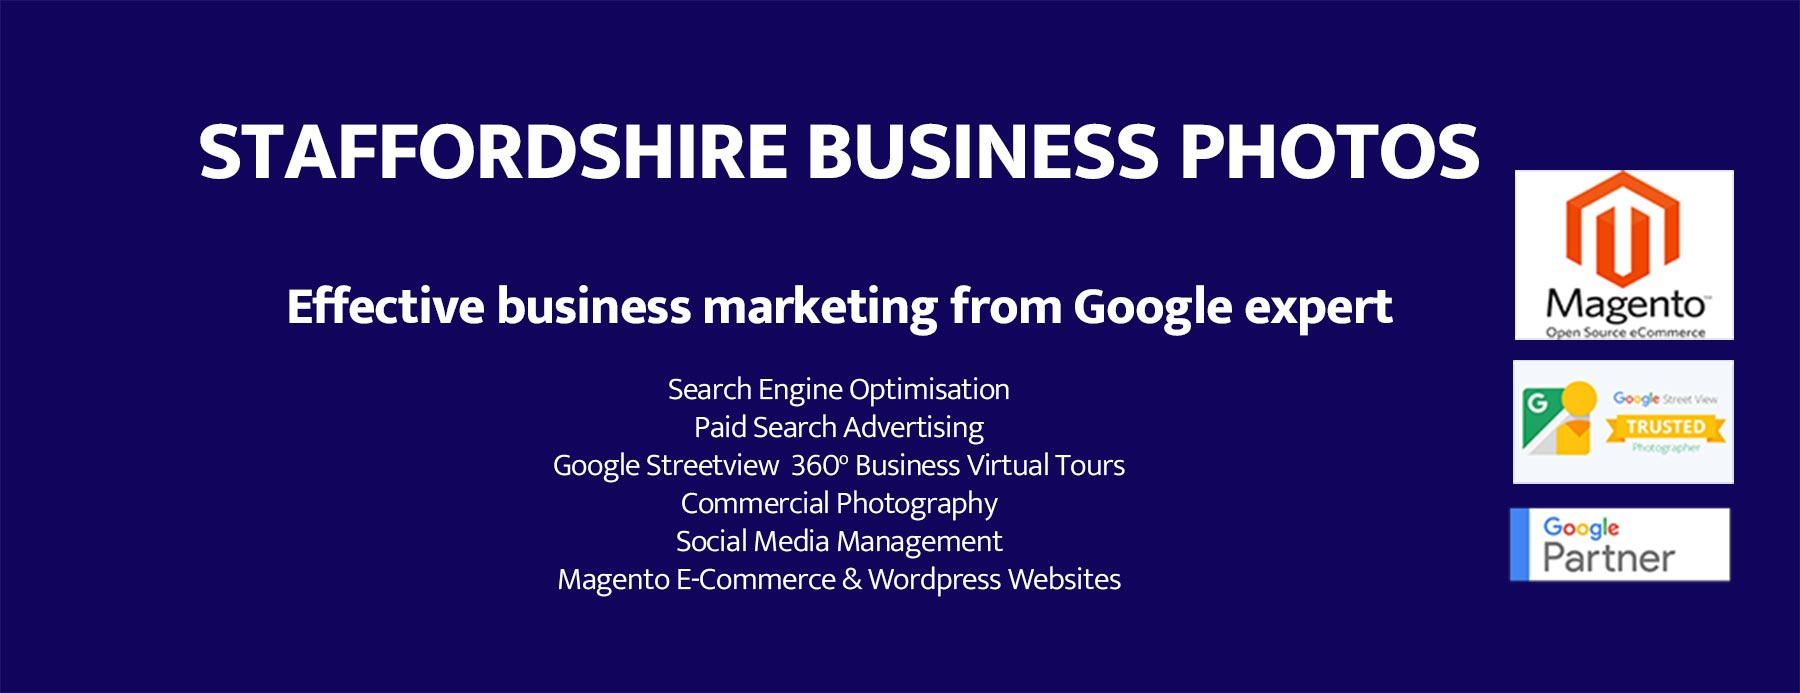 Staffordshire Business Photos services